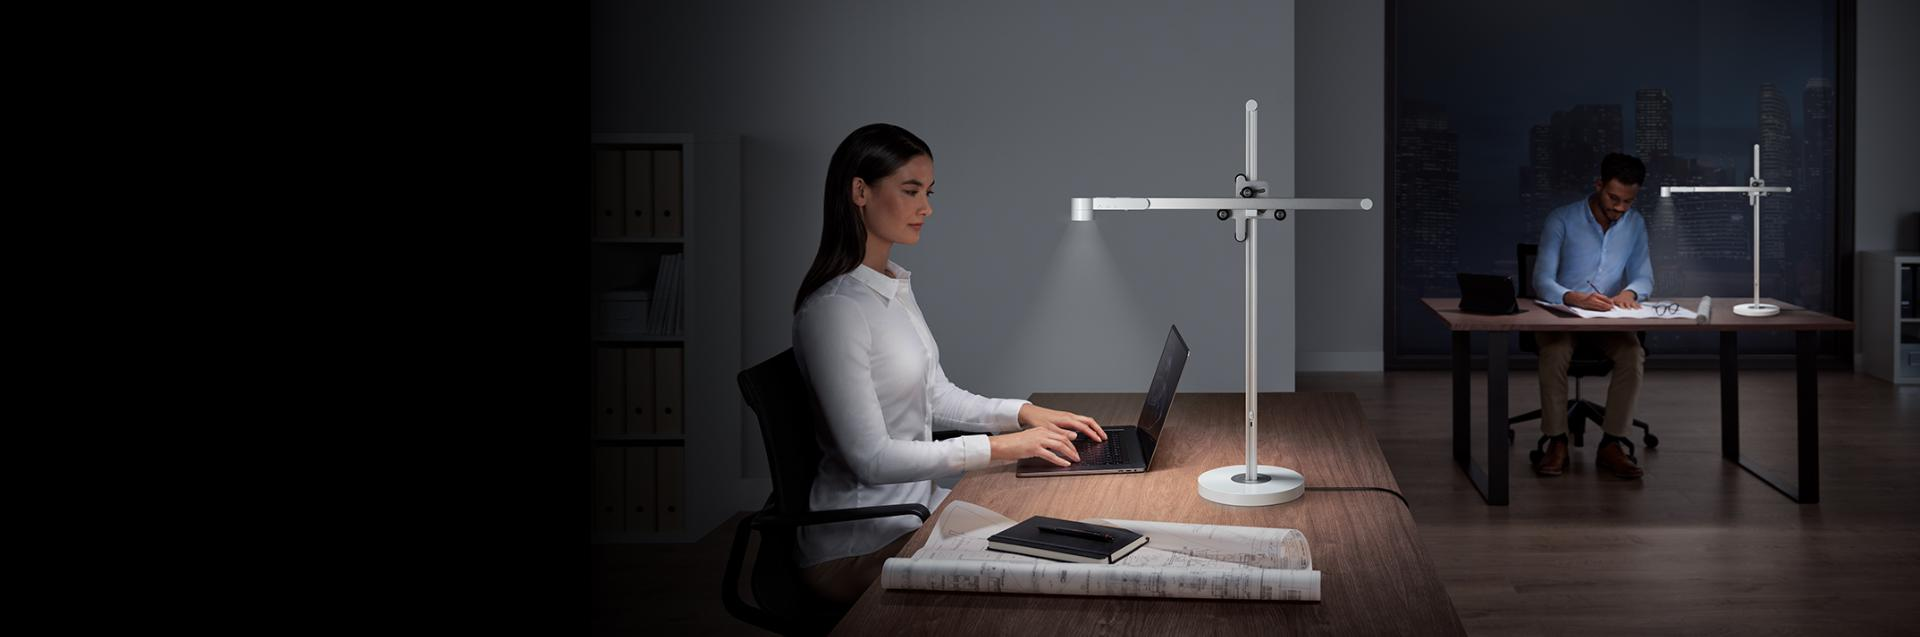 2 models using Dyson Lightcycle desk to work